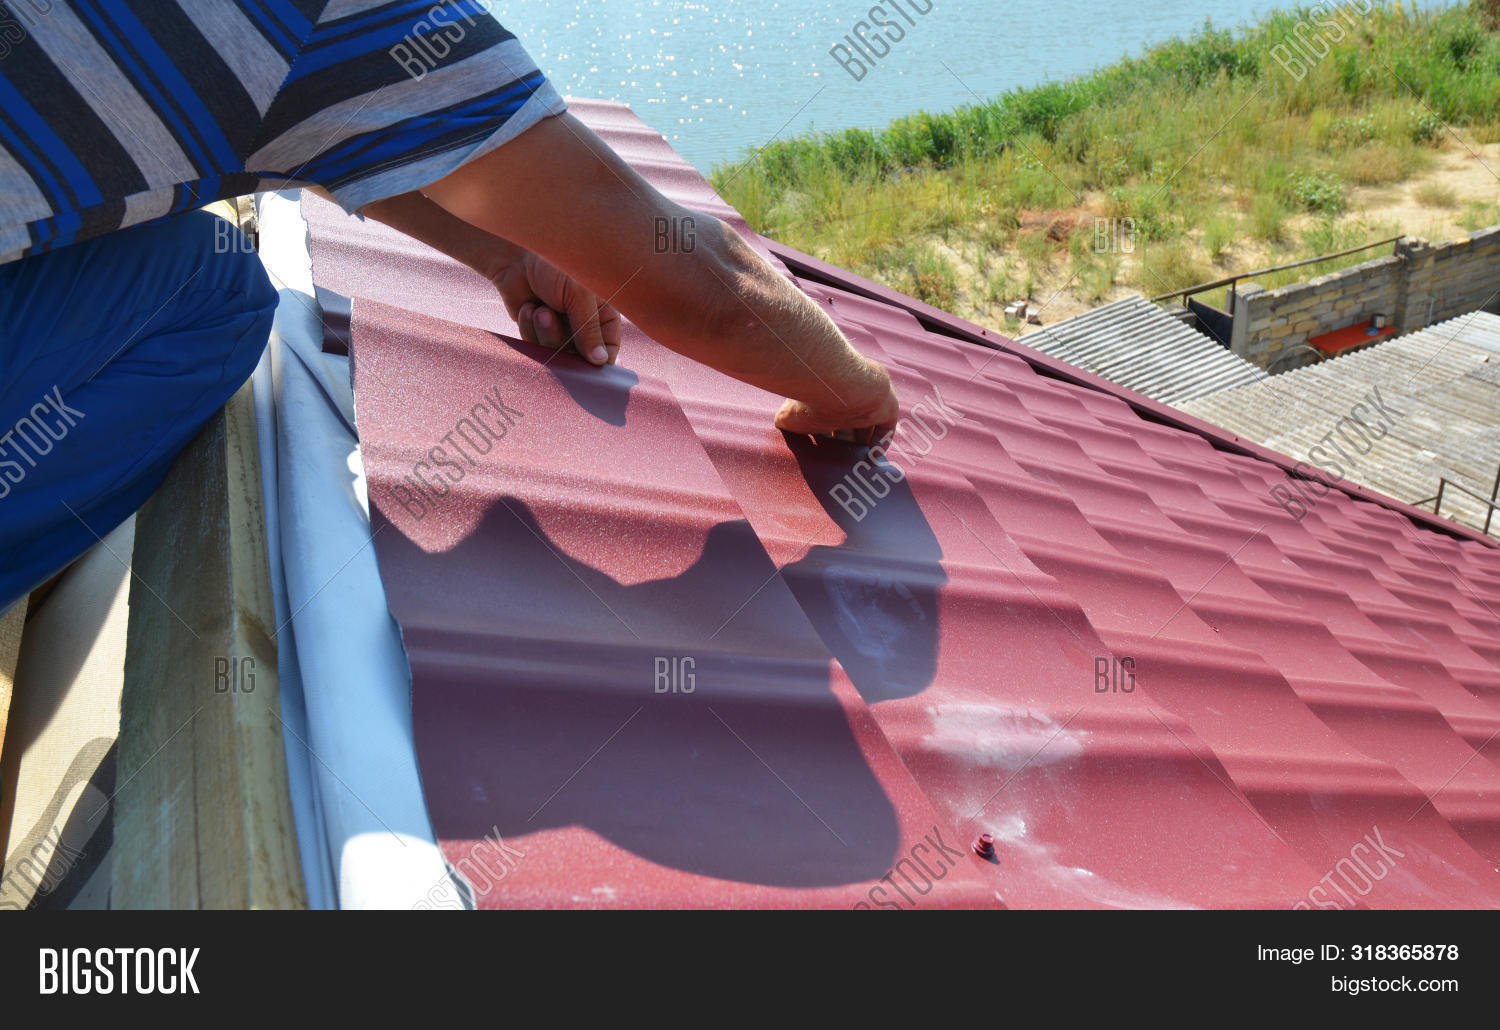 Roofer Contractor Image Photo Free Trial Bigstock